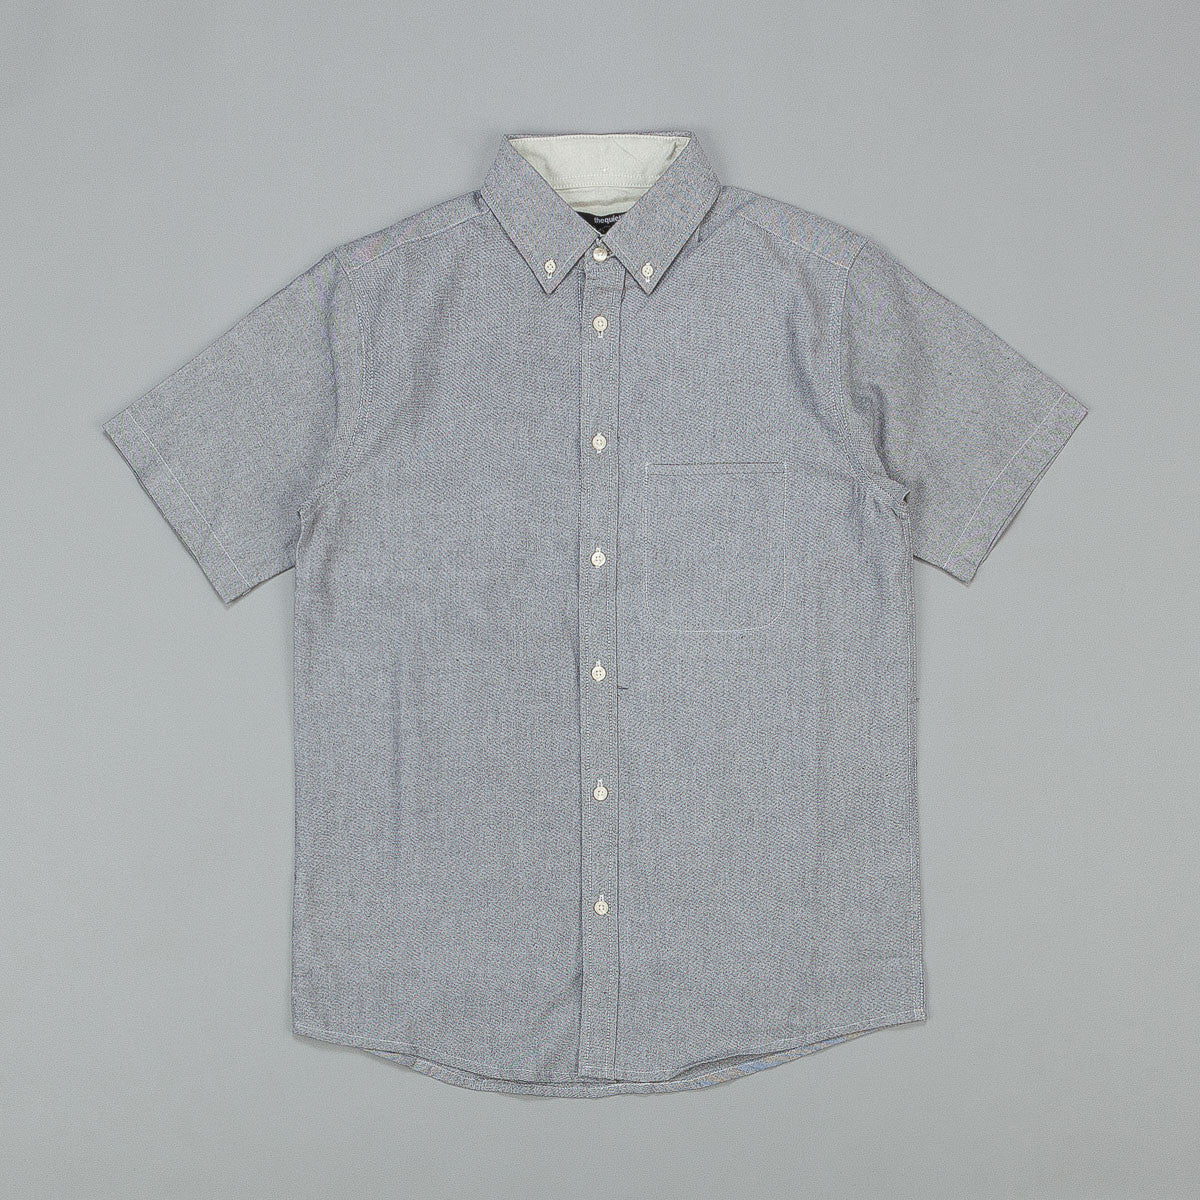 The Quiet Life Oxford Button Up Short Sleeve Shirt